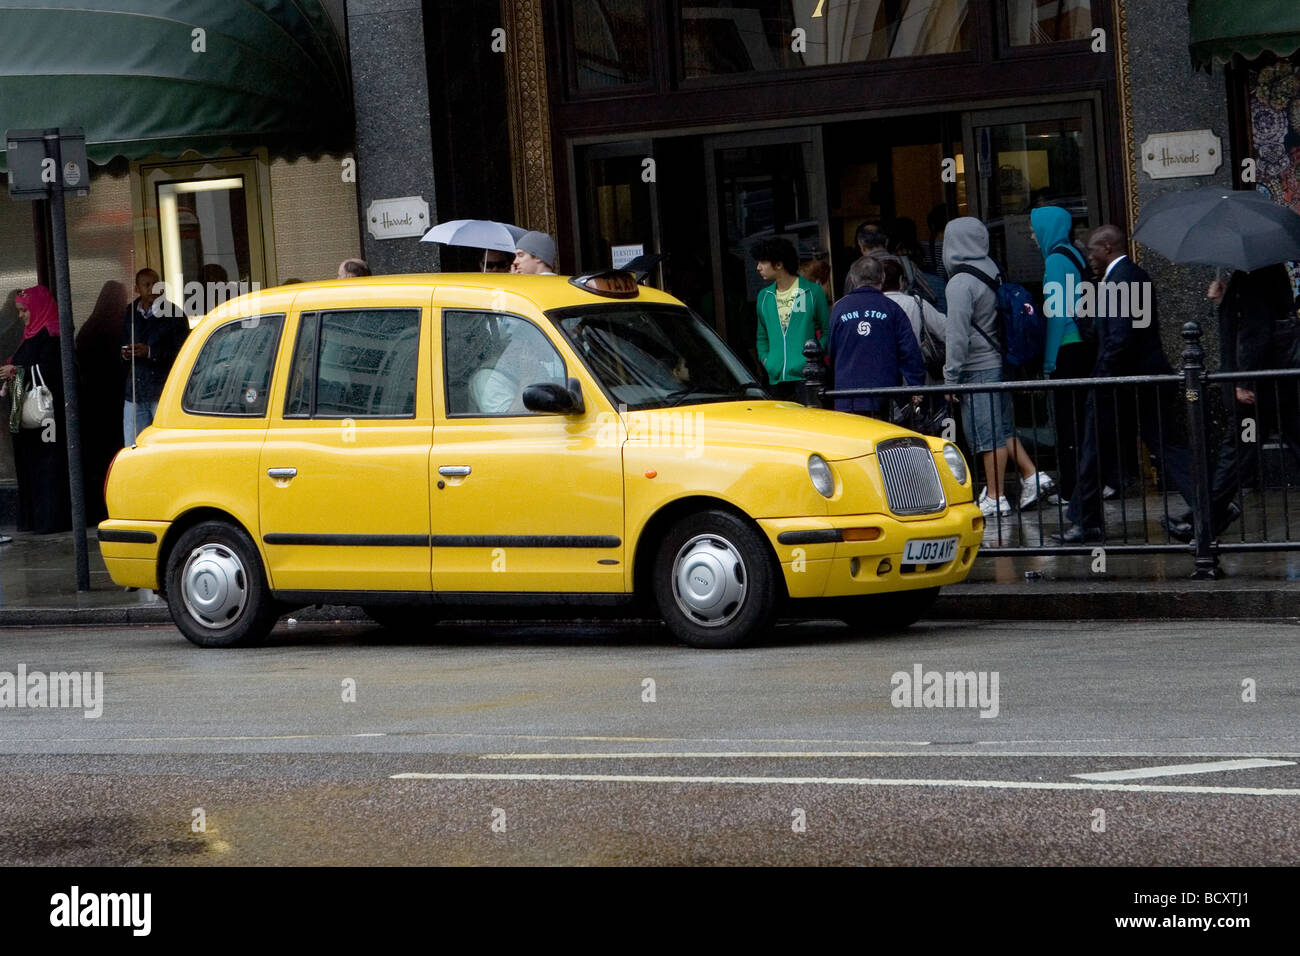 Yellow Taxi outside Harrods - Stock Image